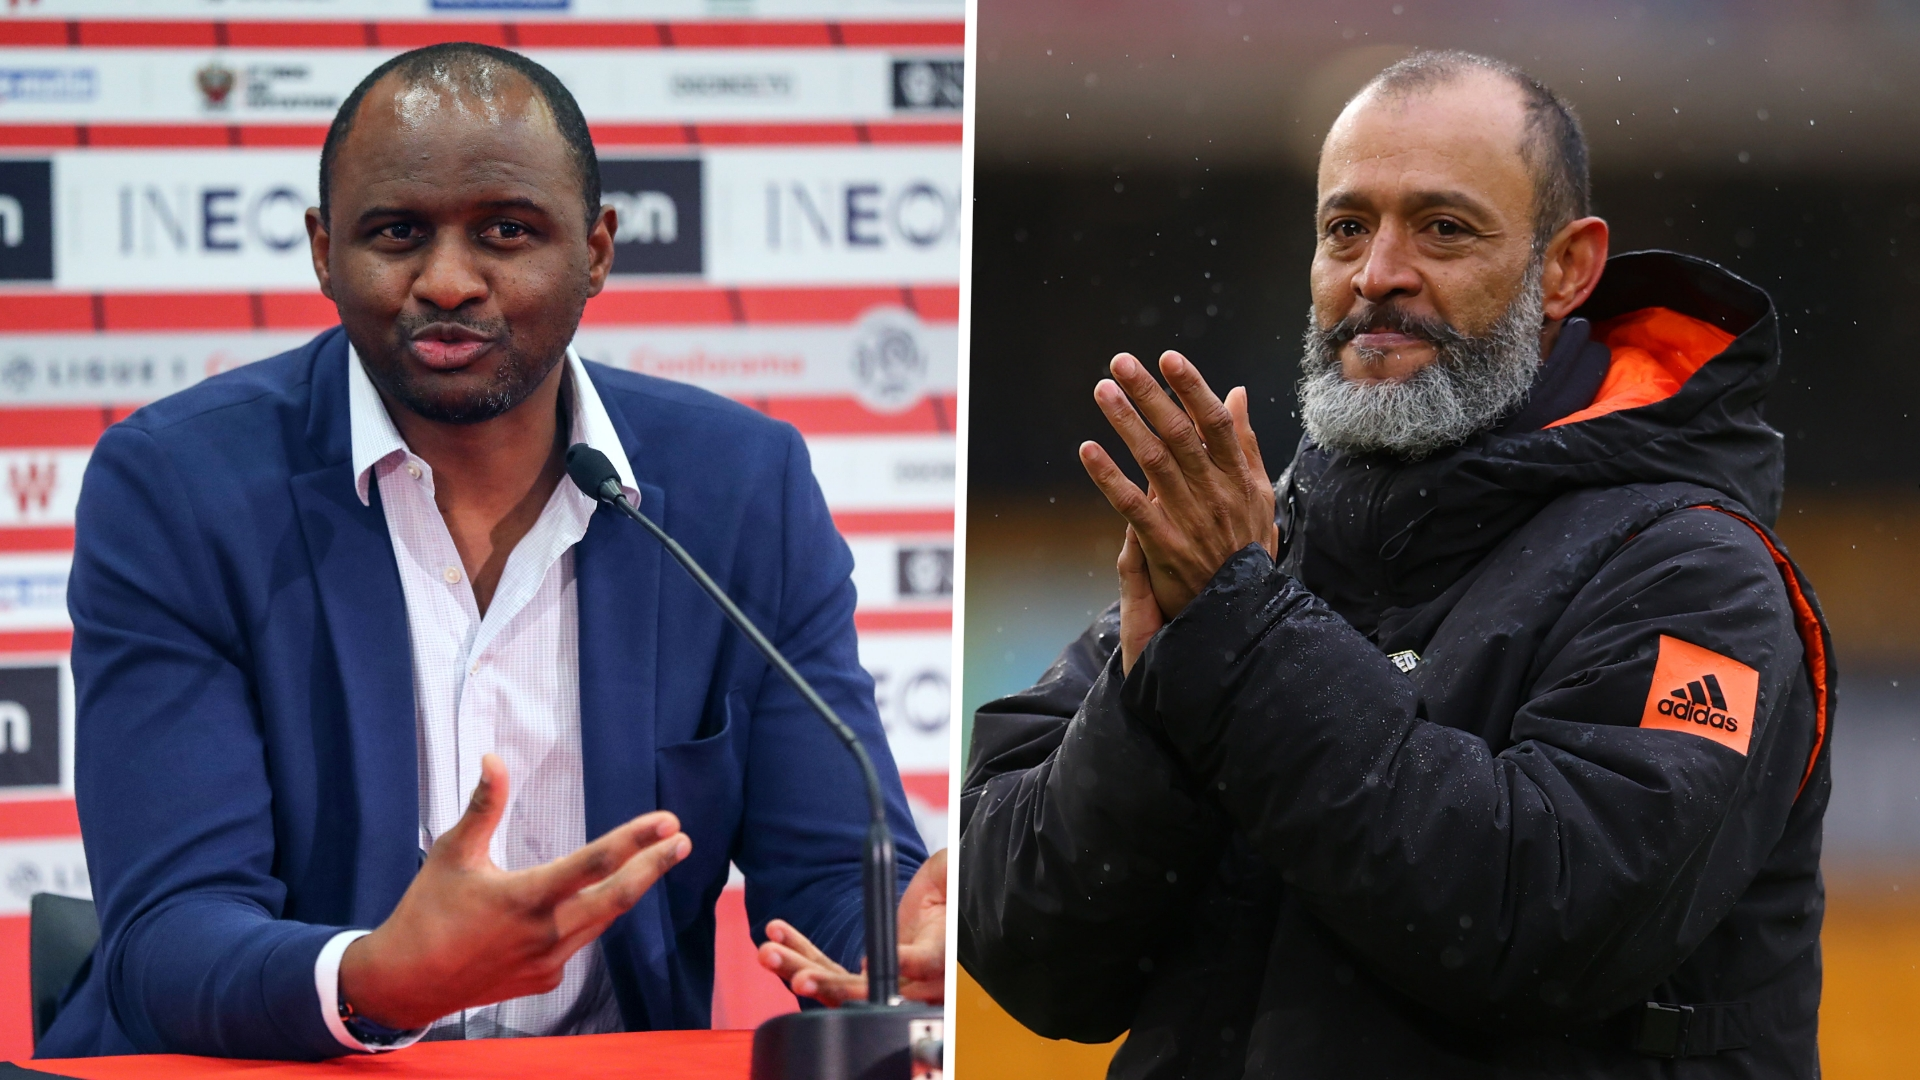 Vieira or Nuno: Which African-born manager will last longer in their new role?